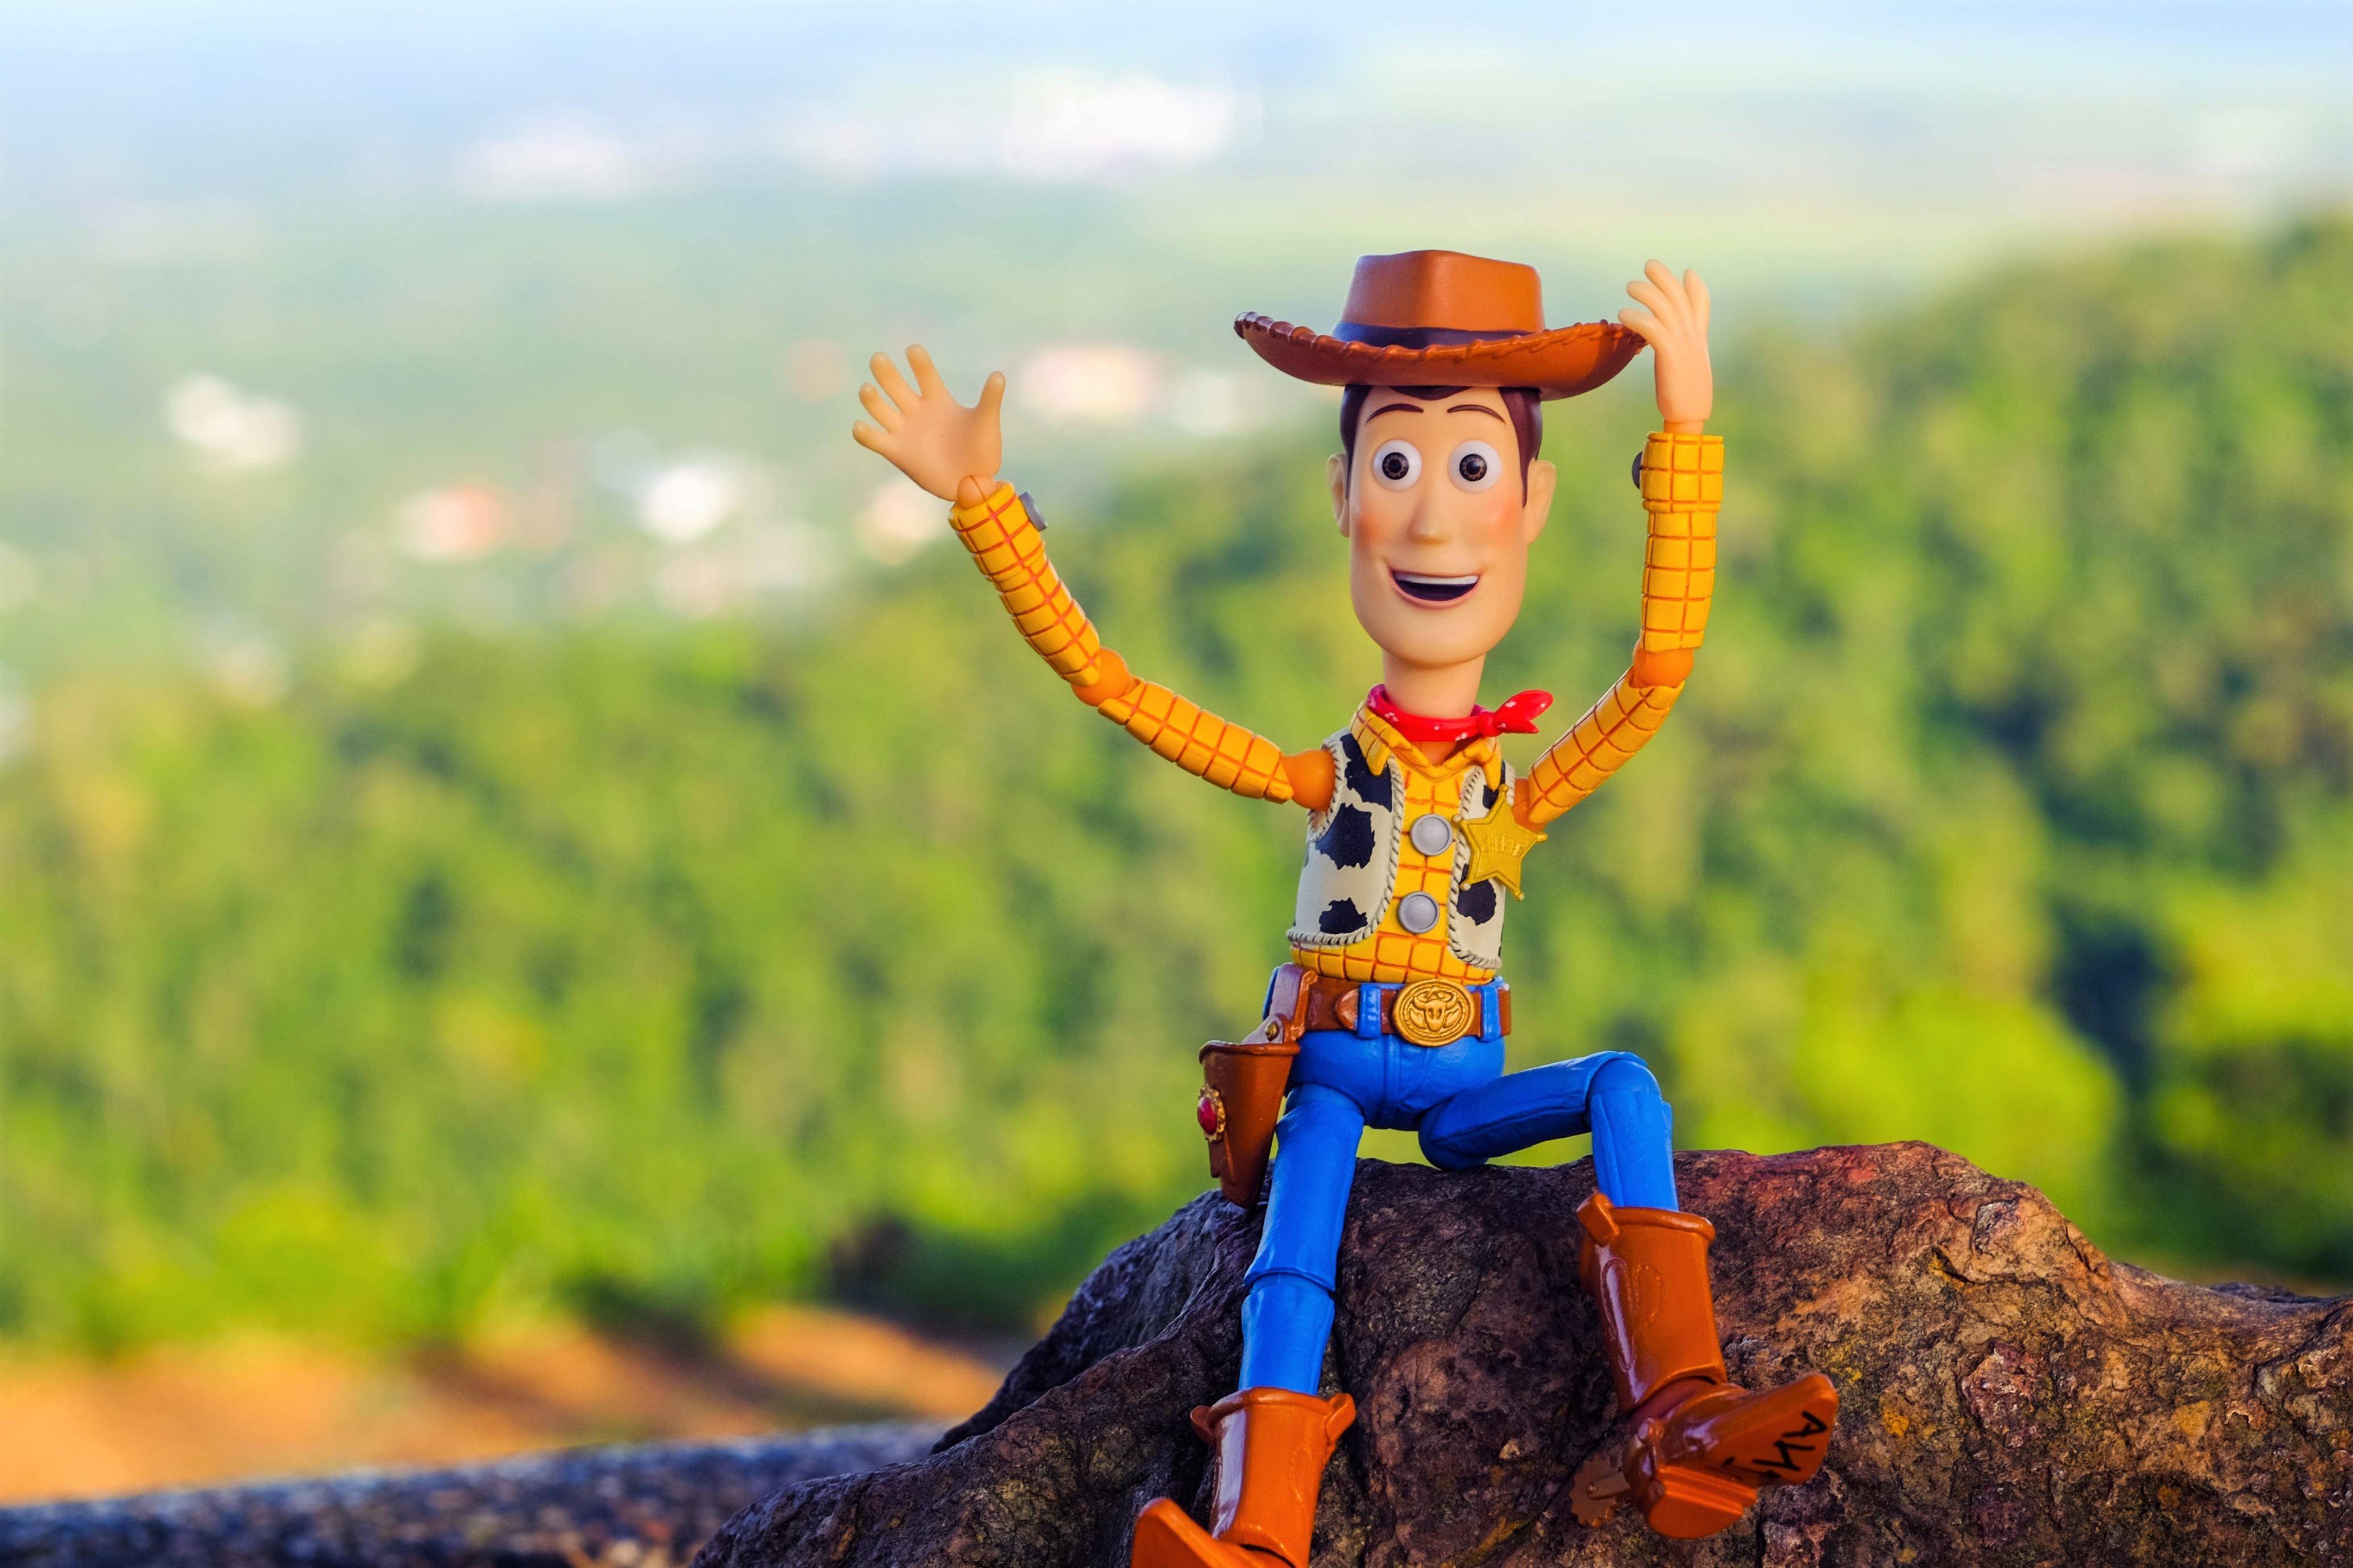 Toy Story Woody Cowboy Sitting on Rock Arms Up